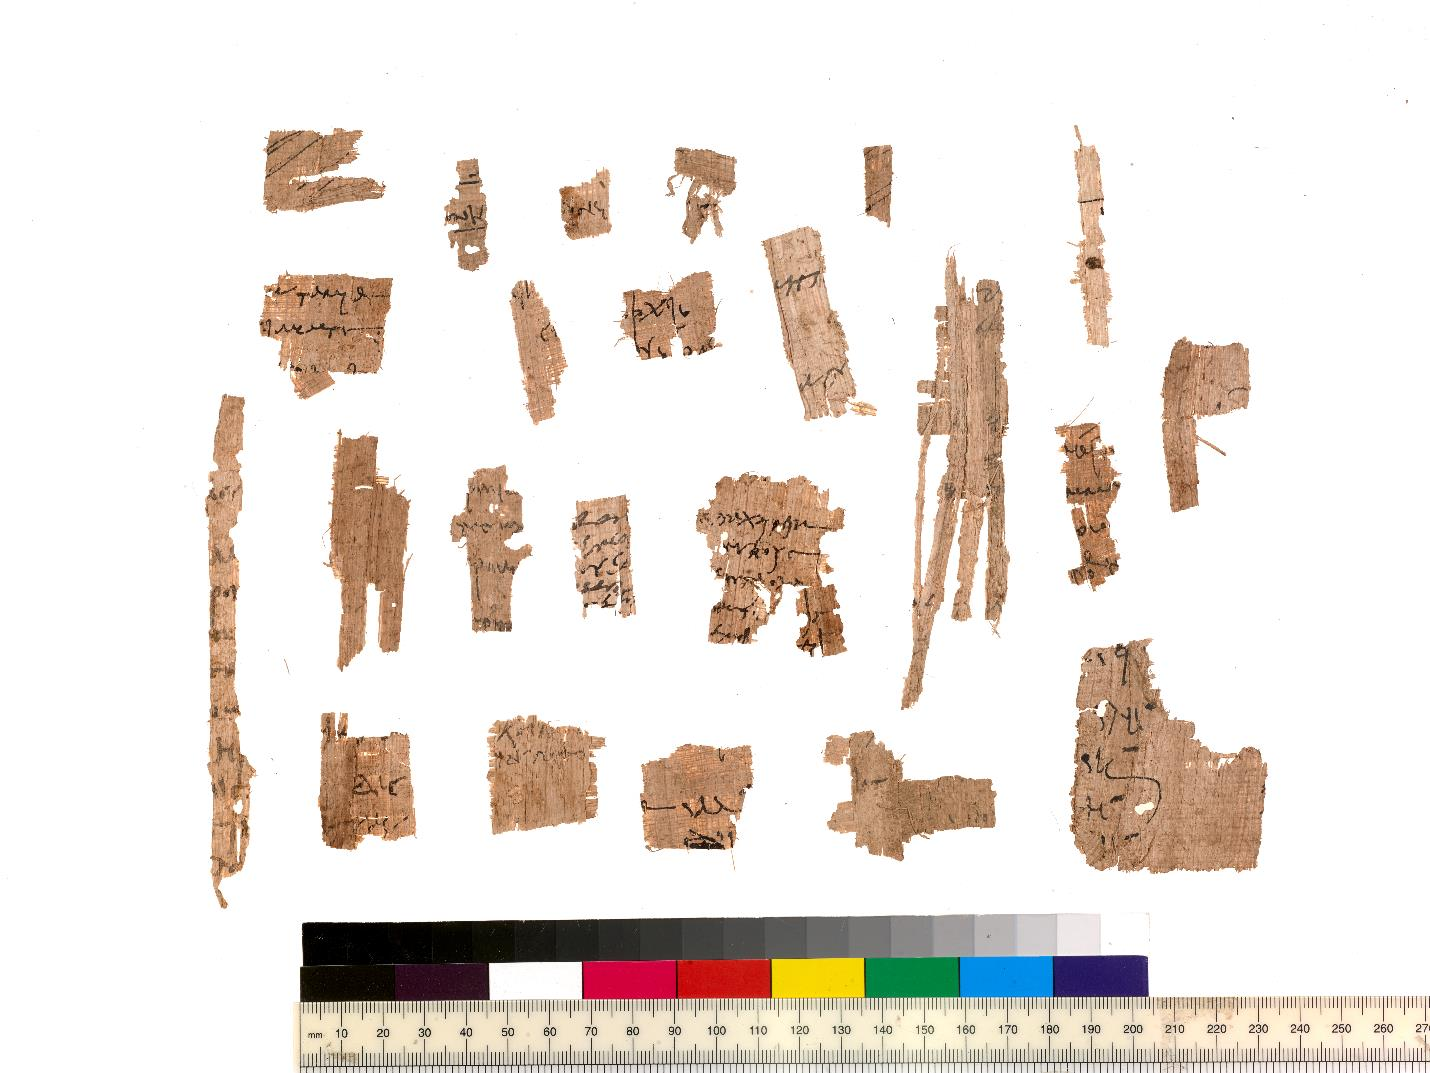 A few of the many small papyrus fragments found near 5451f. P.Mich.inv. 5451c3v, photo by Randal Stegmeyer.